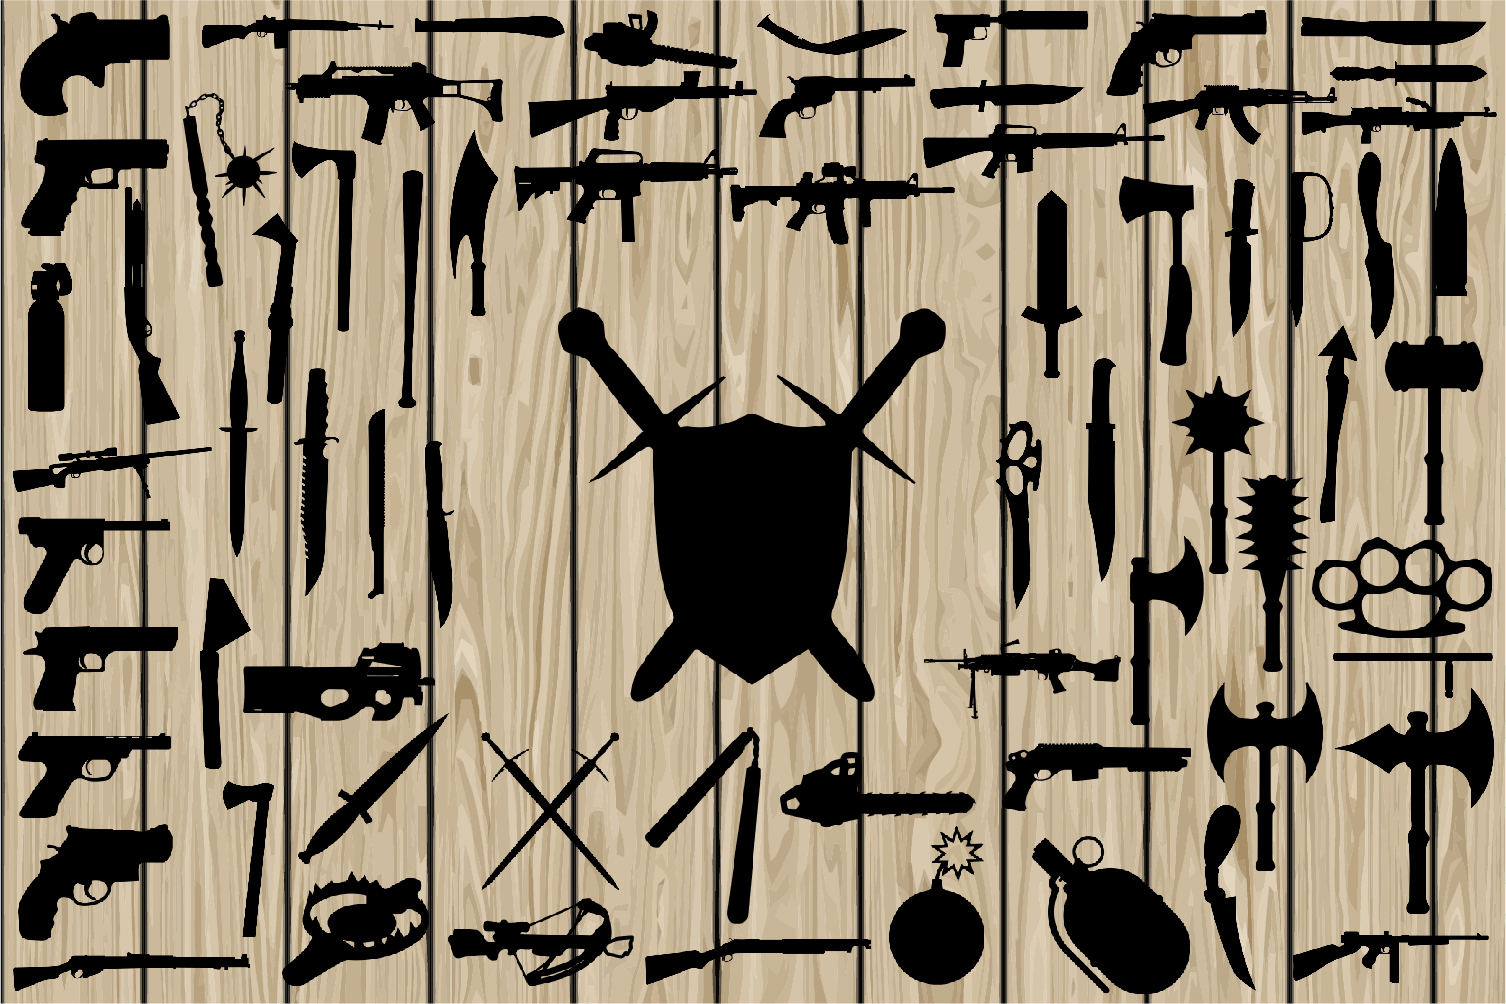 Download Free 70 Weapon Silhouettes Svg Graphic By Cosmosfineart Creative for Cricut Explore, Silhouette and other cutting machines.